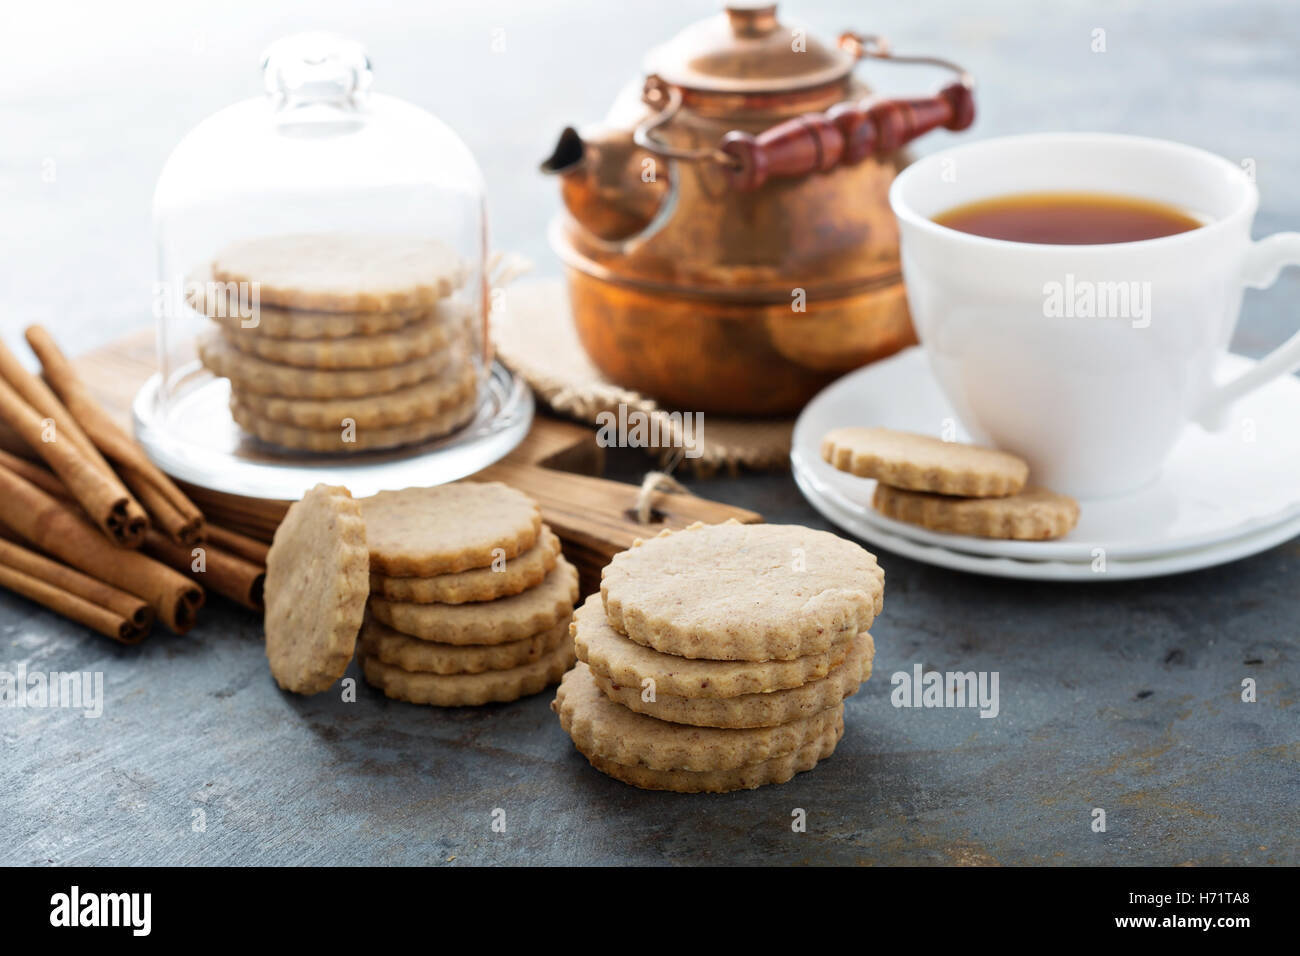 Découper des biscuits à la cannelle Photo Stock